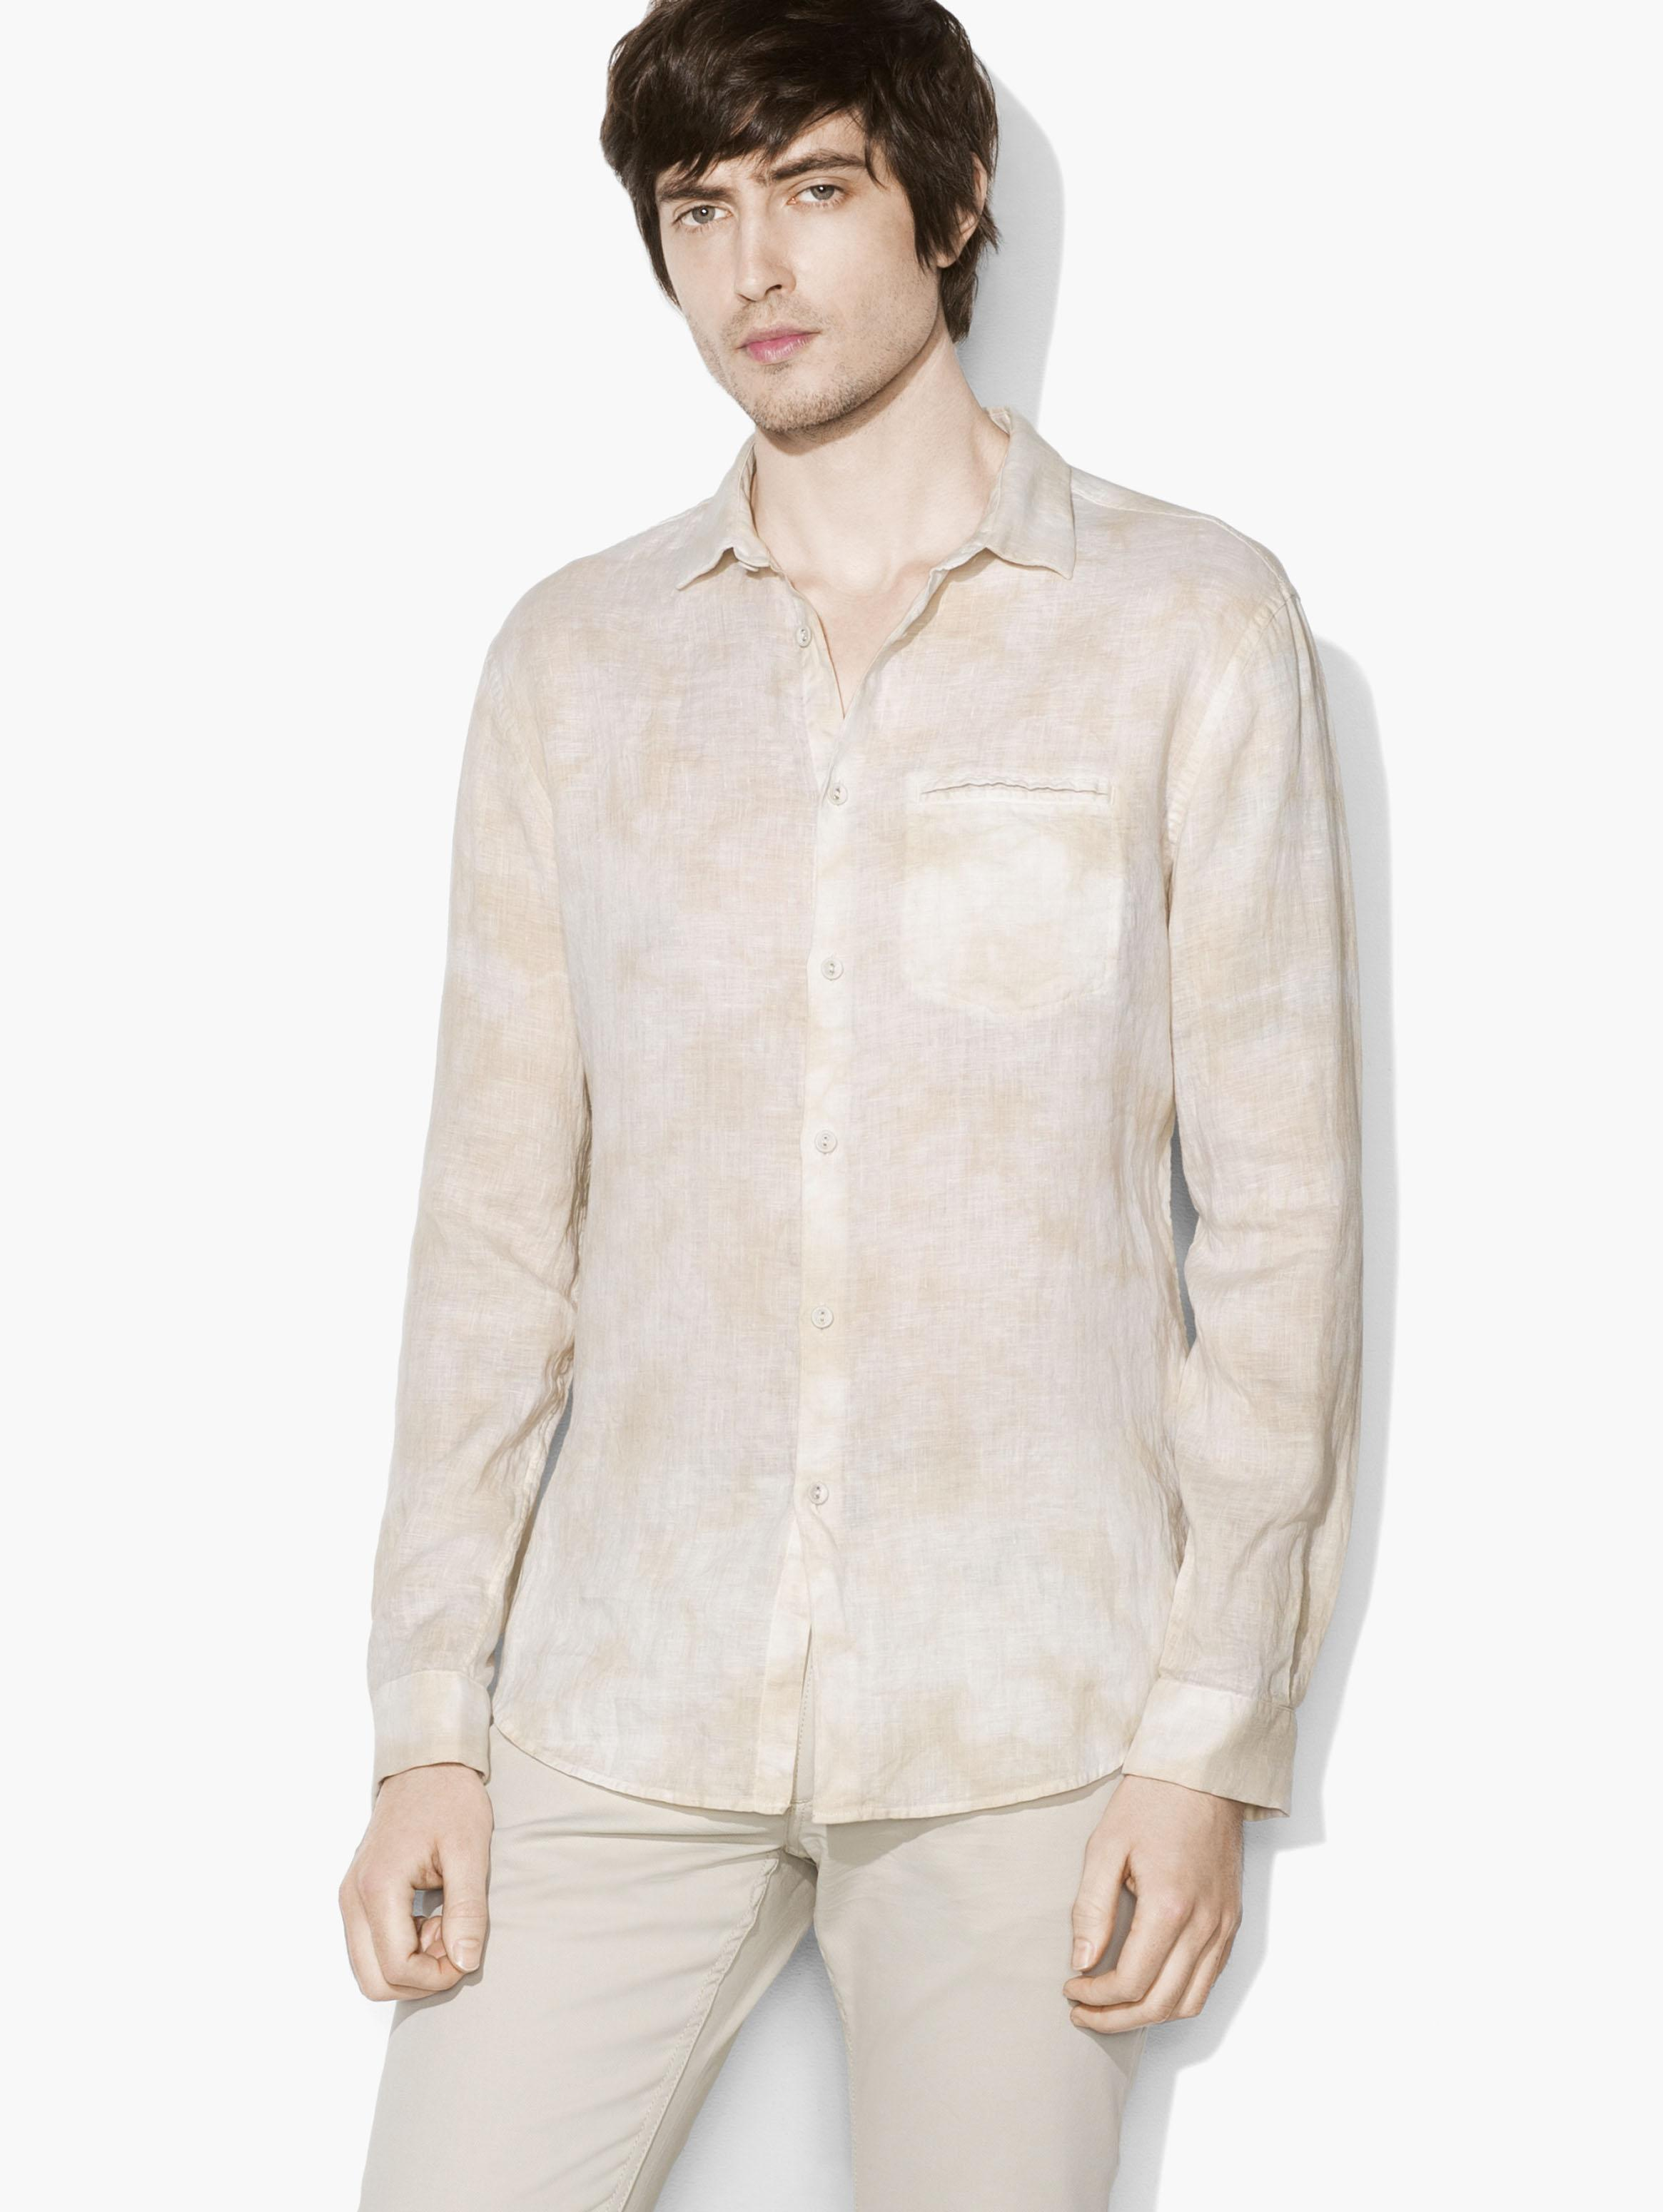 Allover Water Dye Shirt by John Varvatos